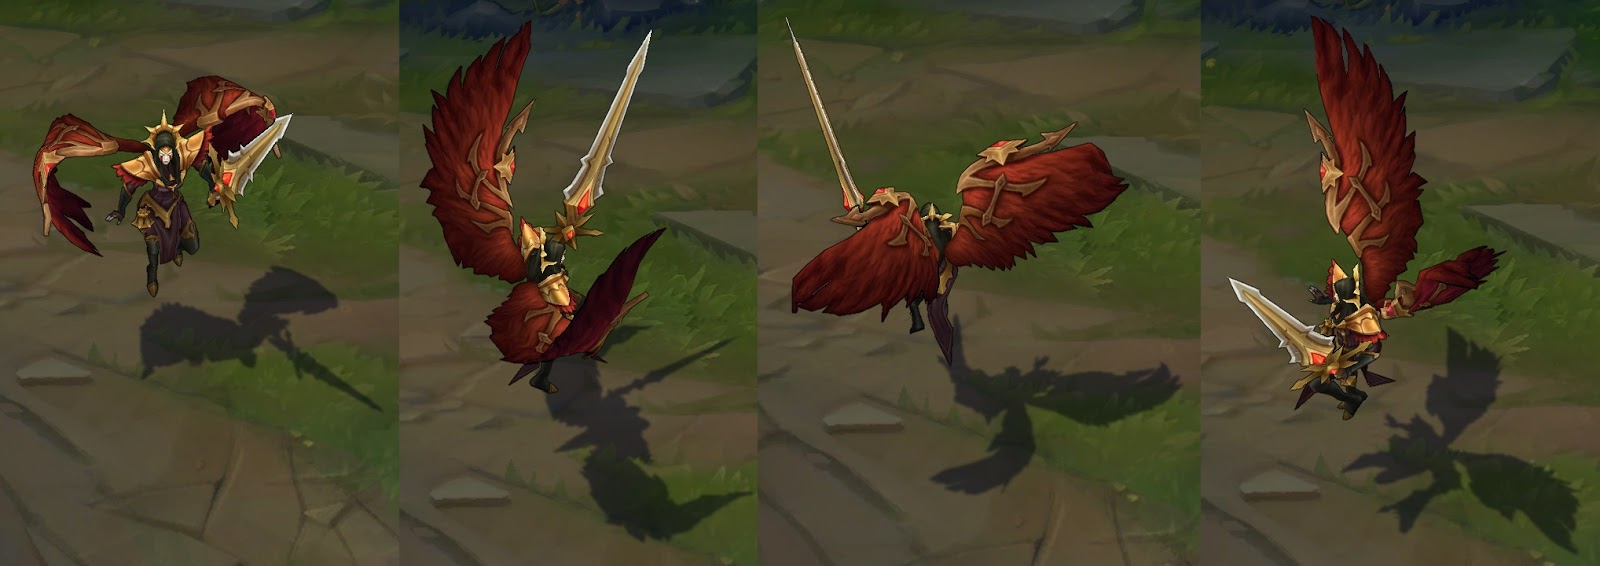 Iron Inquisitor Kayle on arka